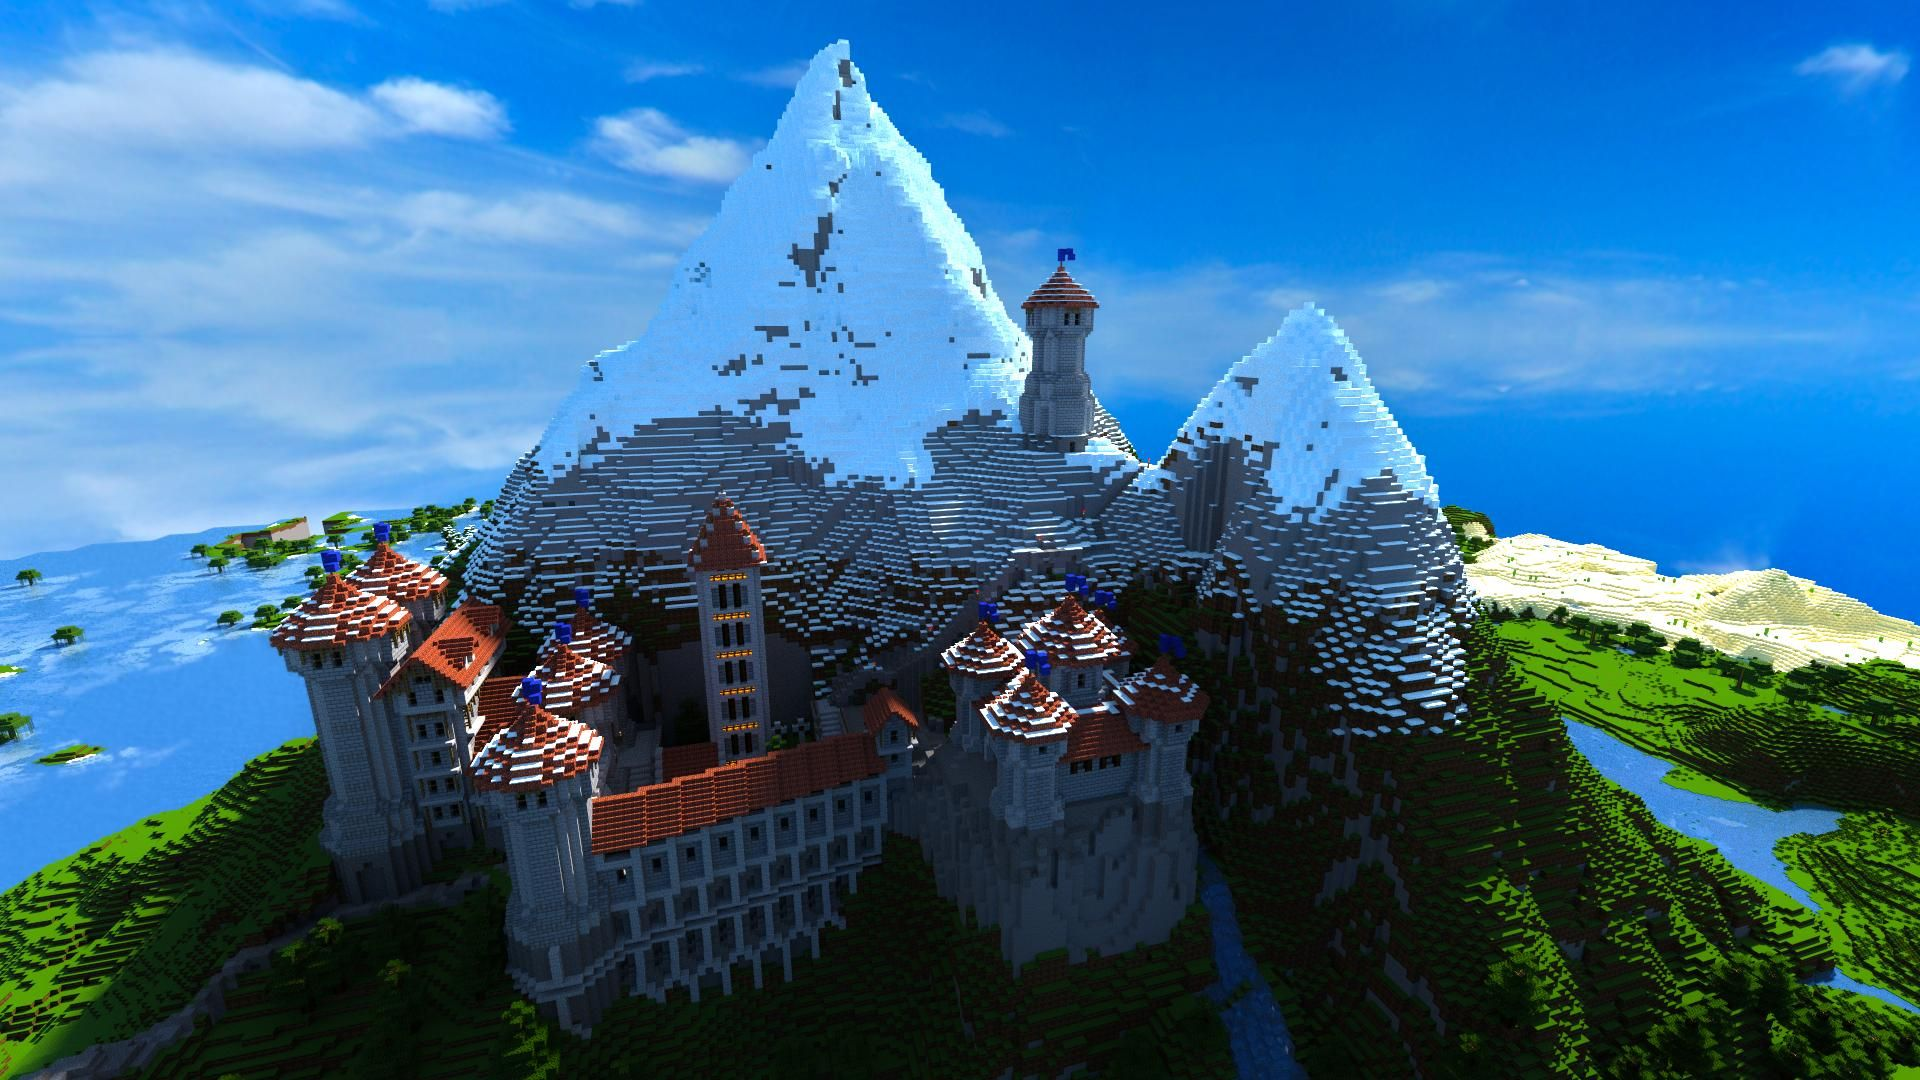 The Minecraft Castle  Review Site For All The Funny  Quirky And Outrageous Things To Do With